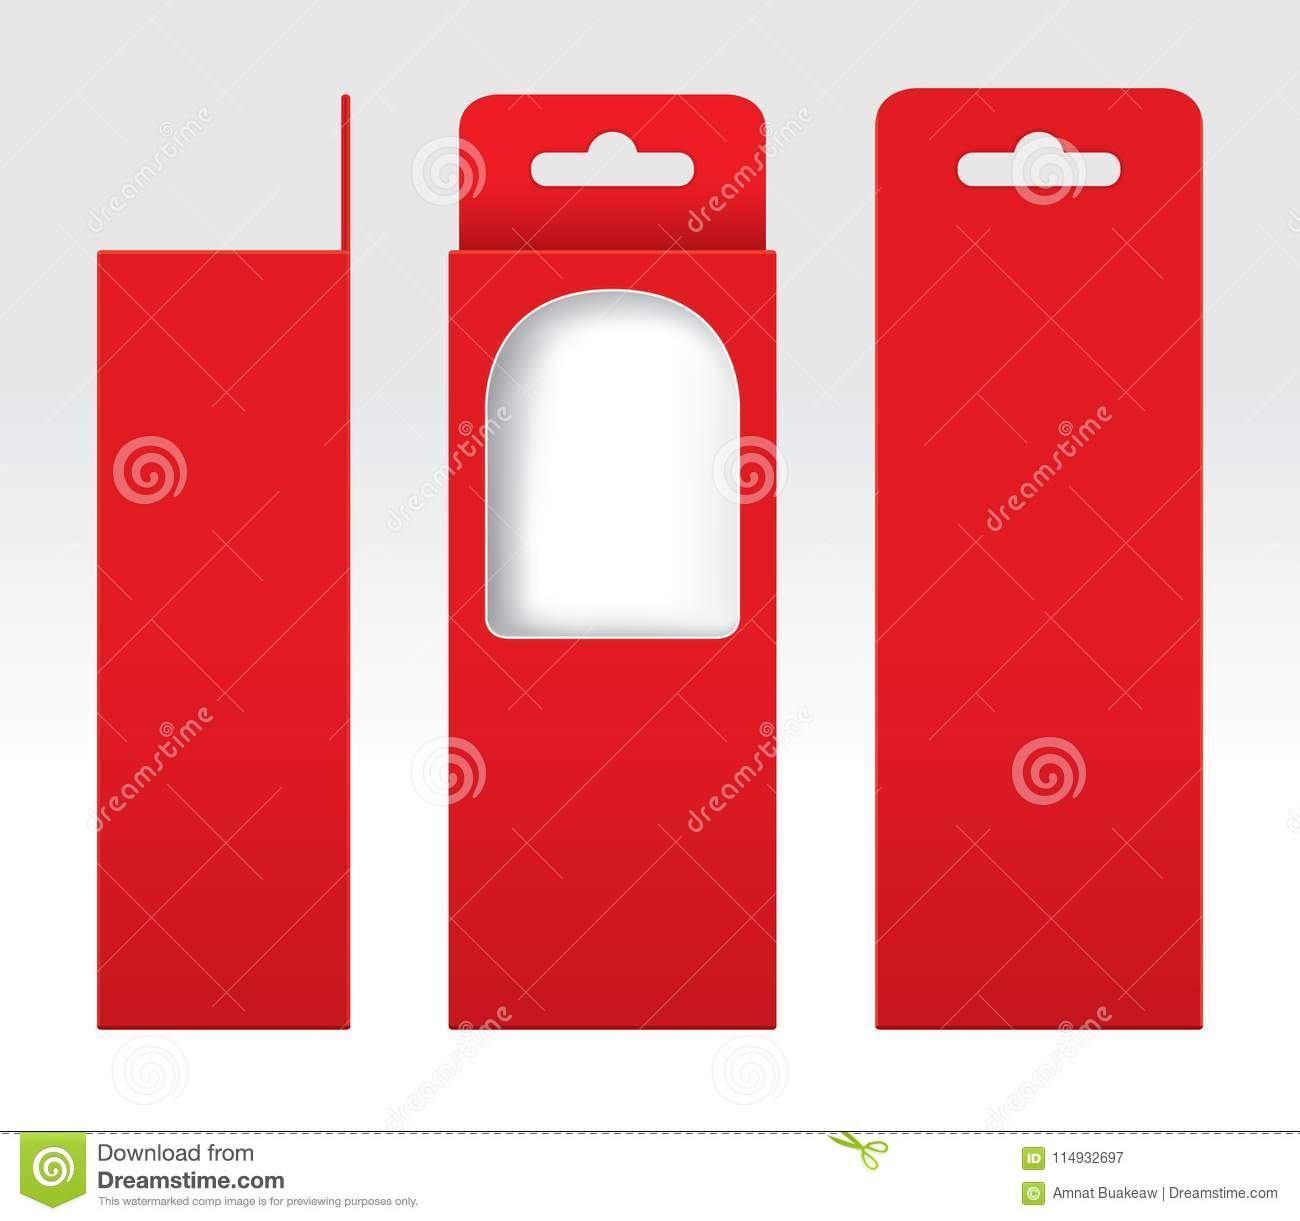 Hanging Red Box Window Cut Out Packaging Template Blank Empty Cardboard Gift